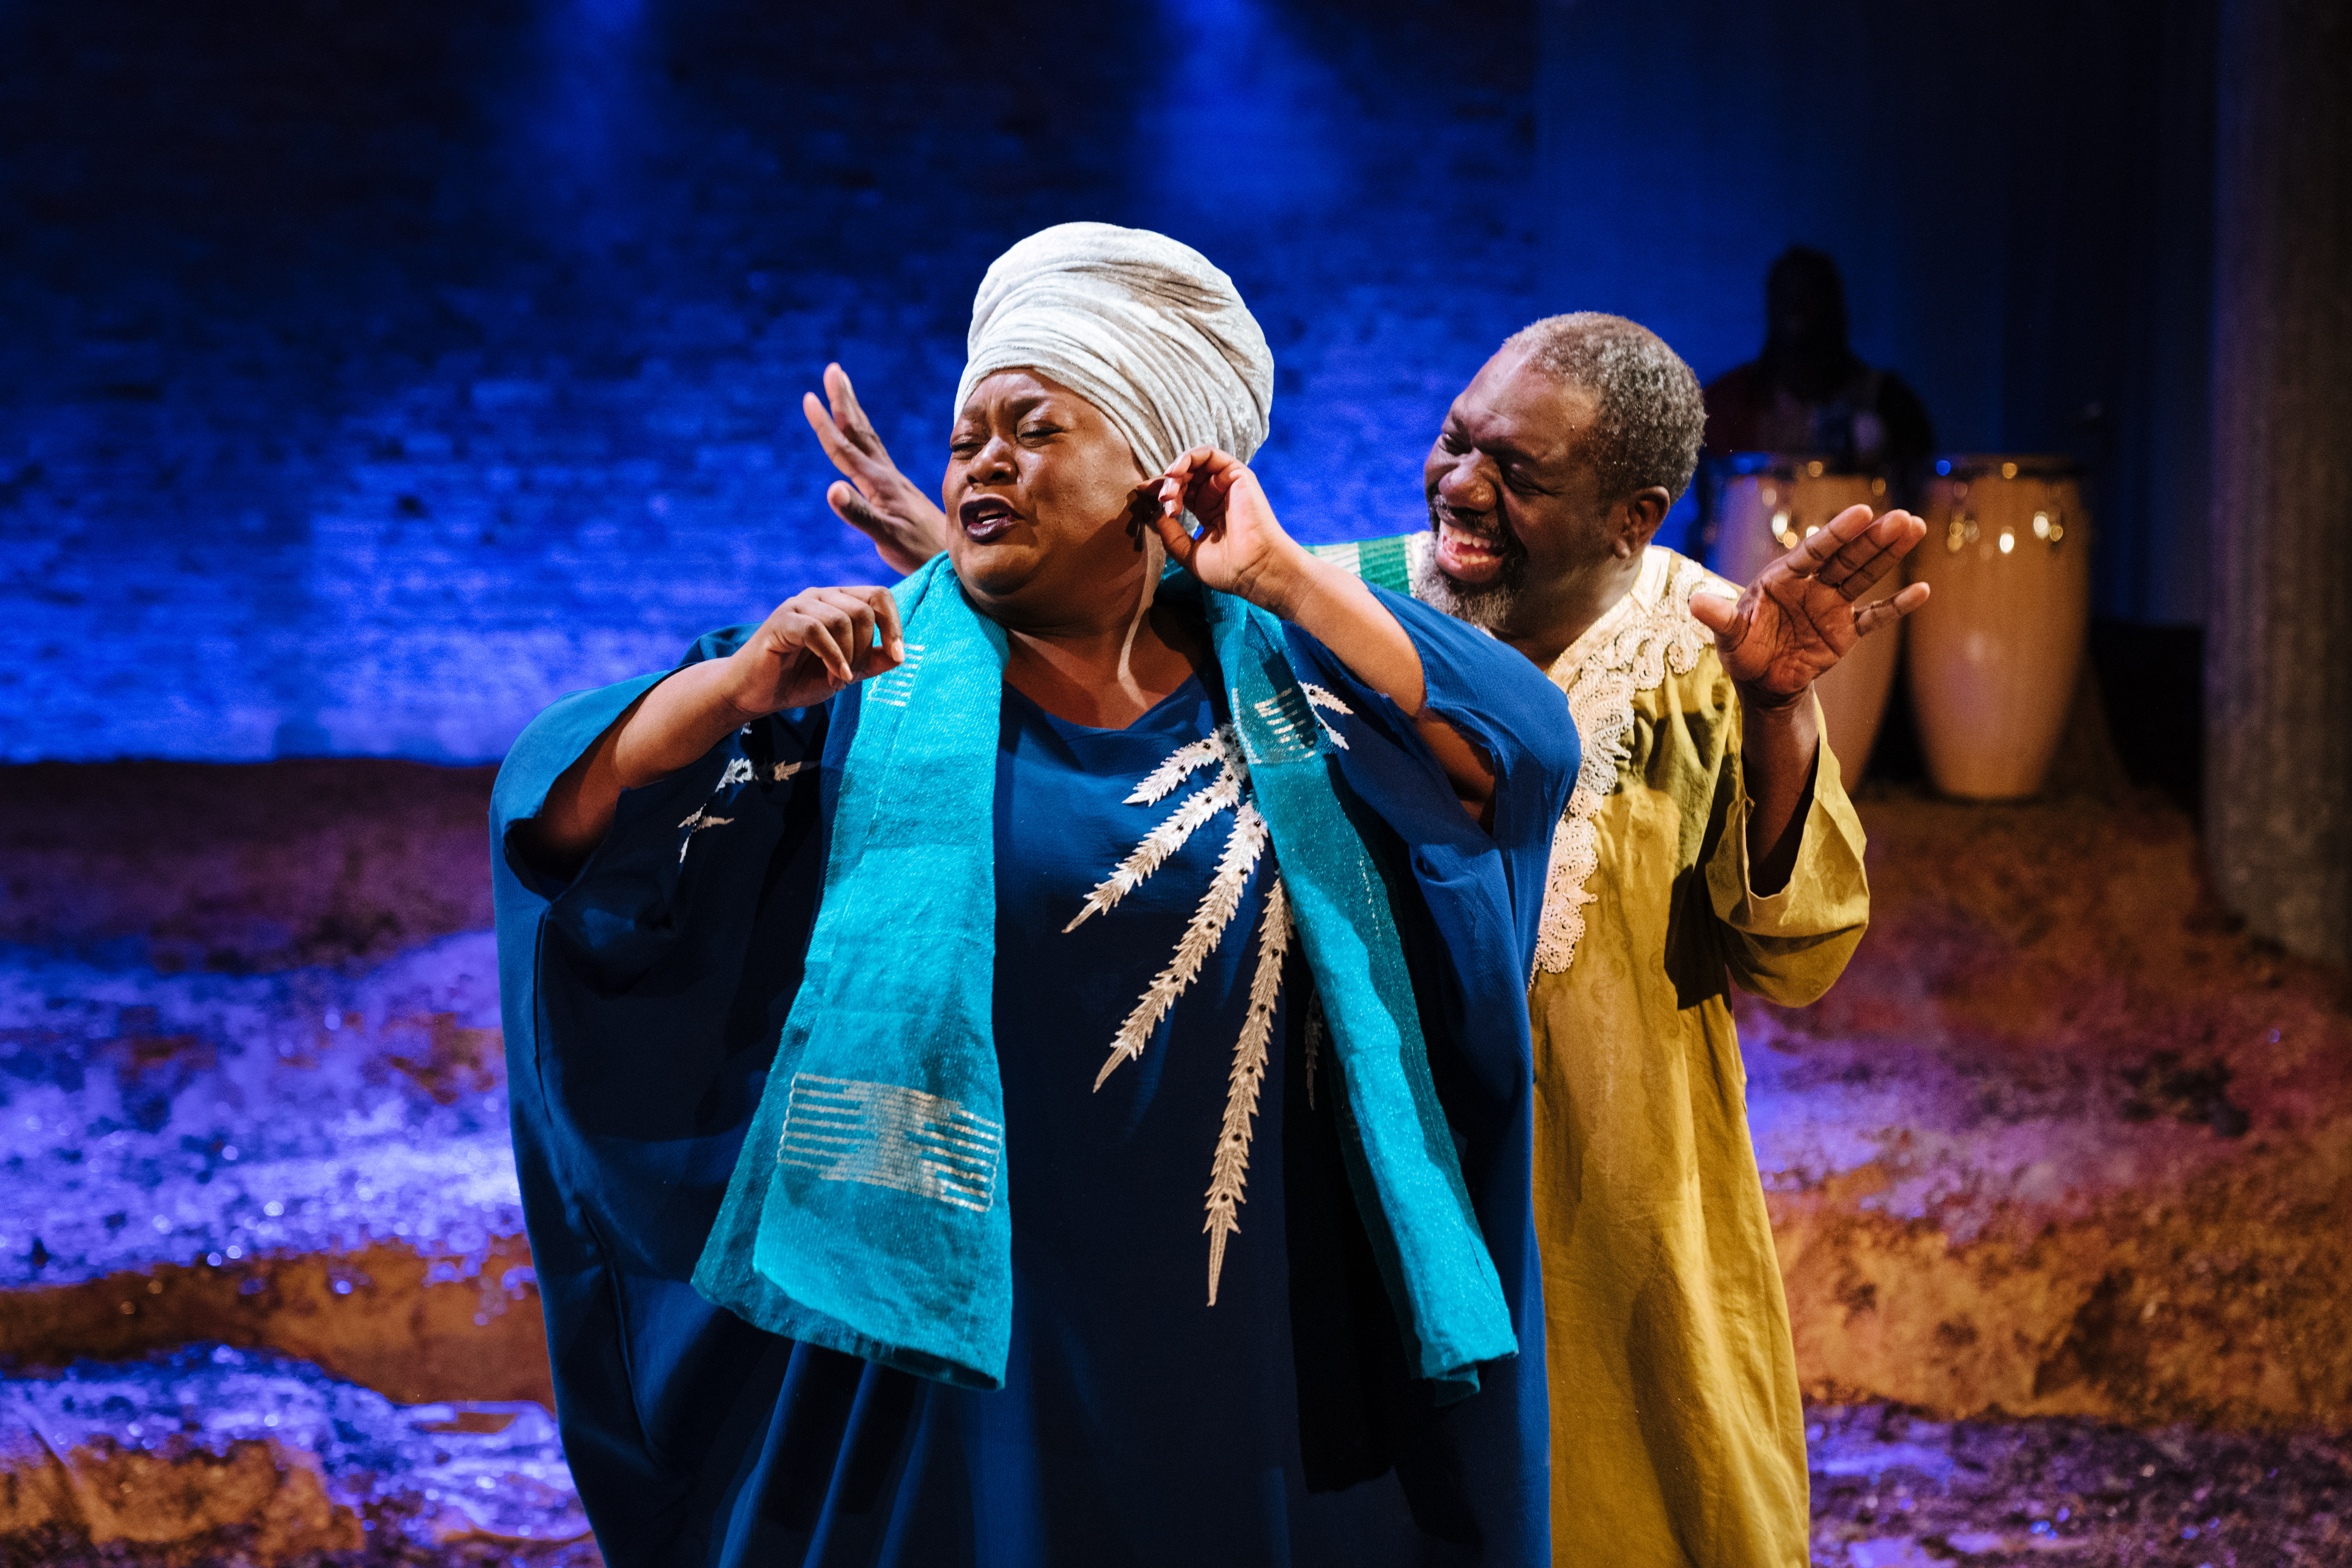 The High Table celebrates black queer love and Nigerian ancestry on stage